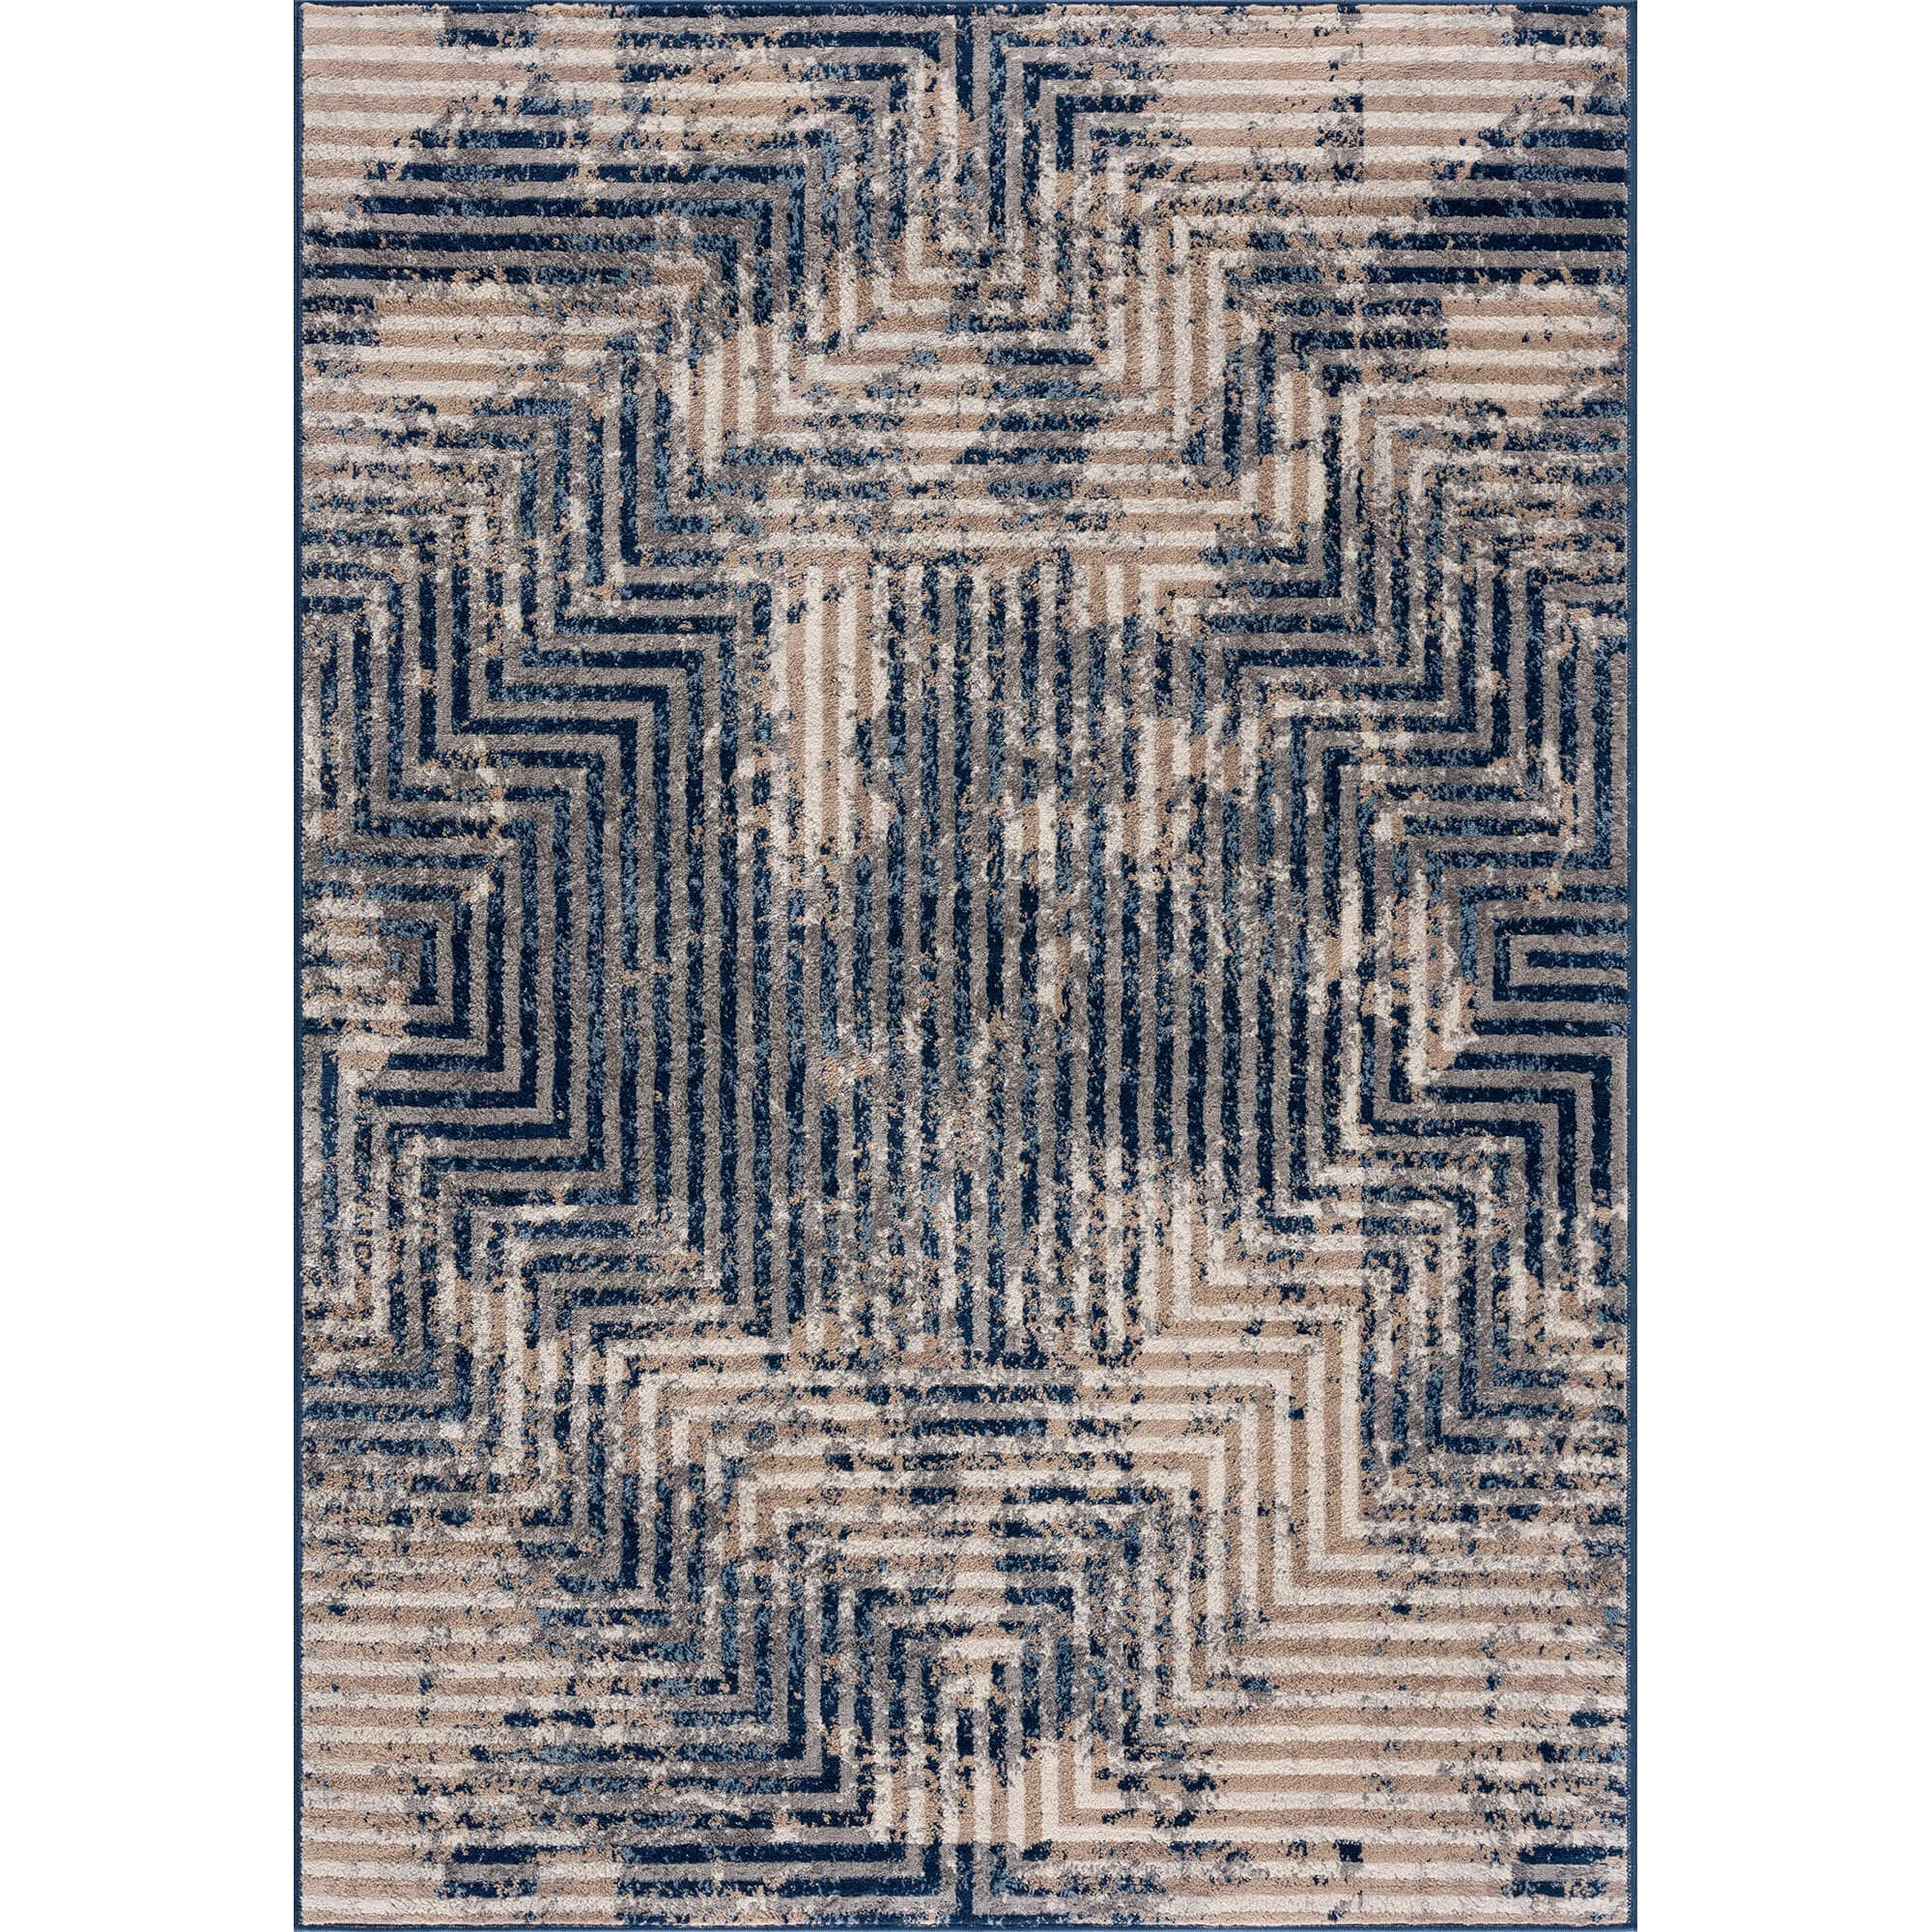 Living Room Rug Abstract Design In Blue